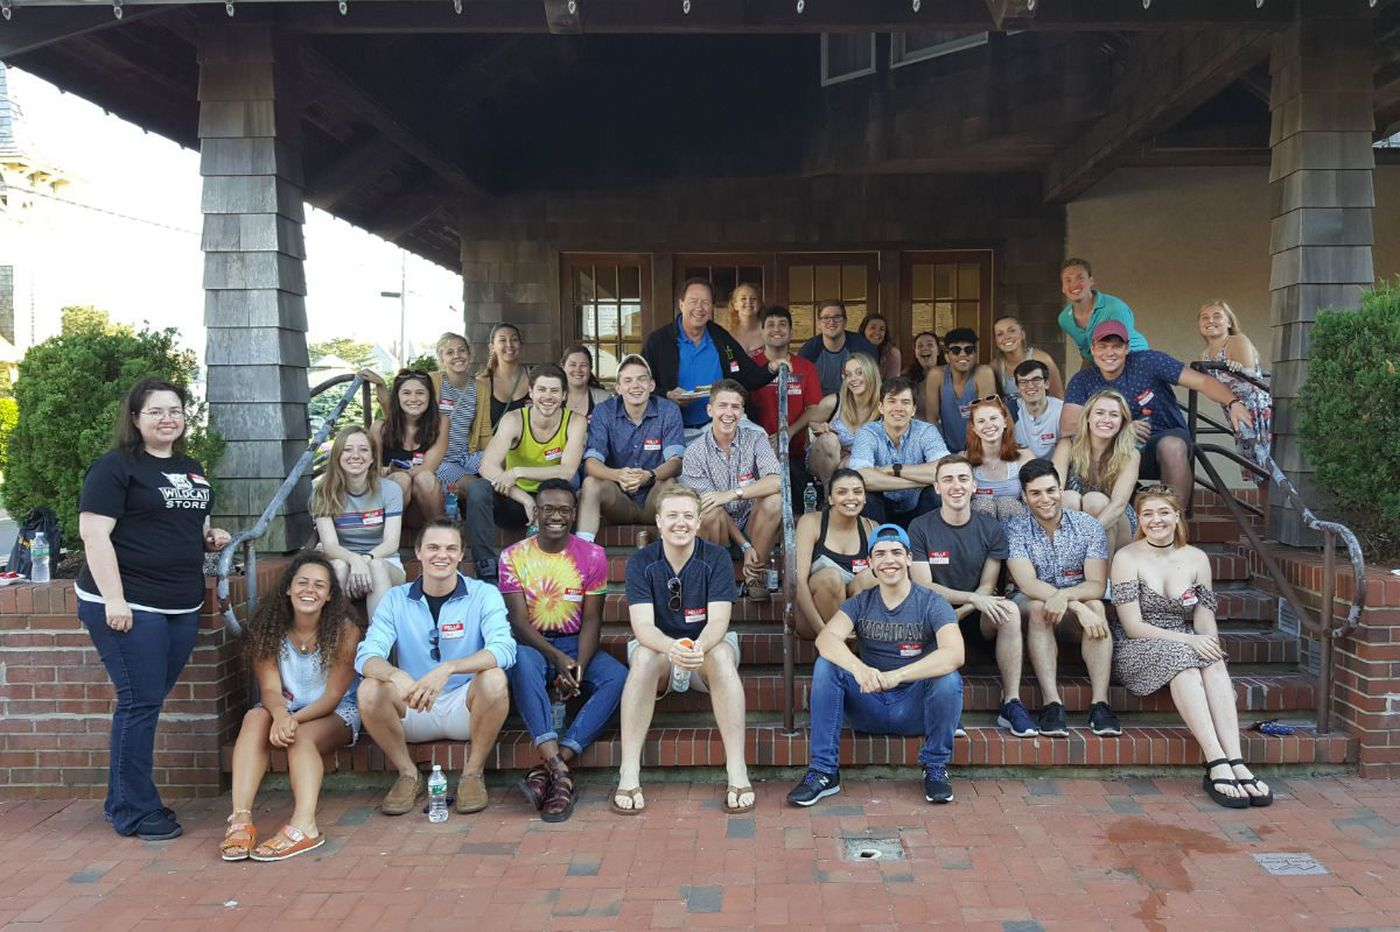 Beach theater: The Surflight Theatre rises again with 'Footloose!' on Friday